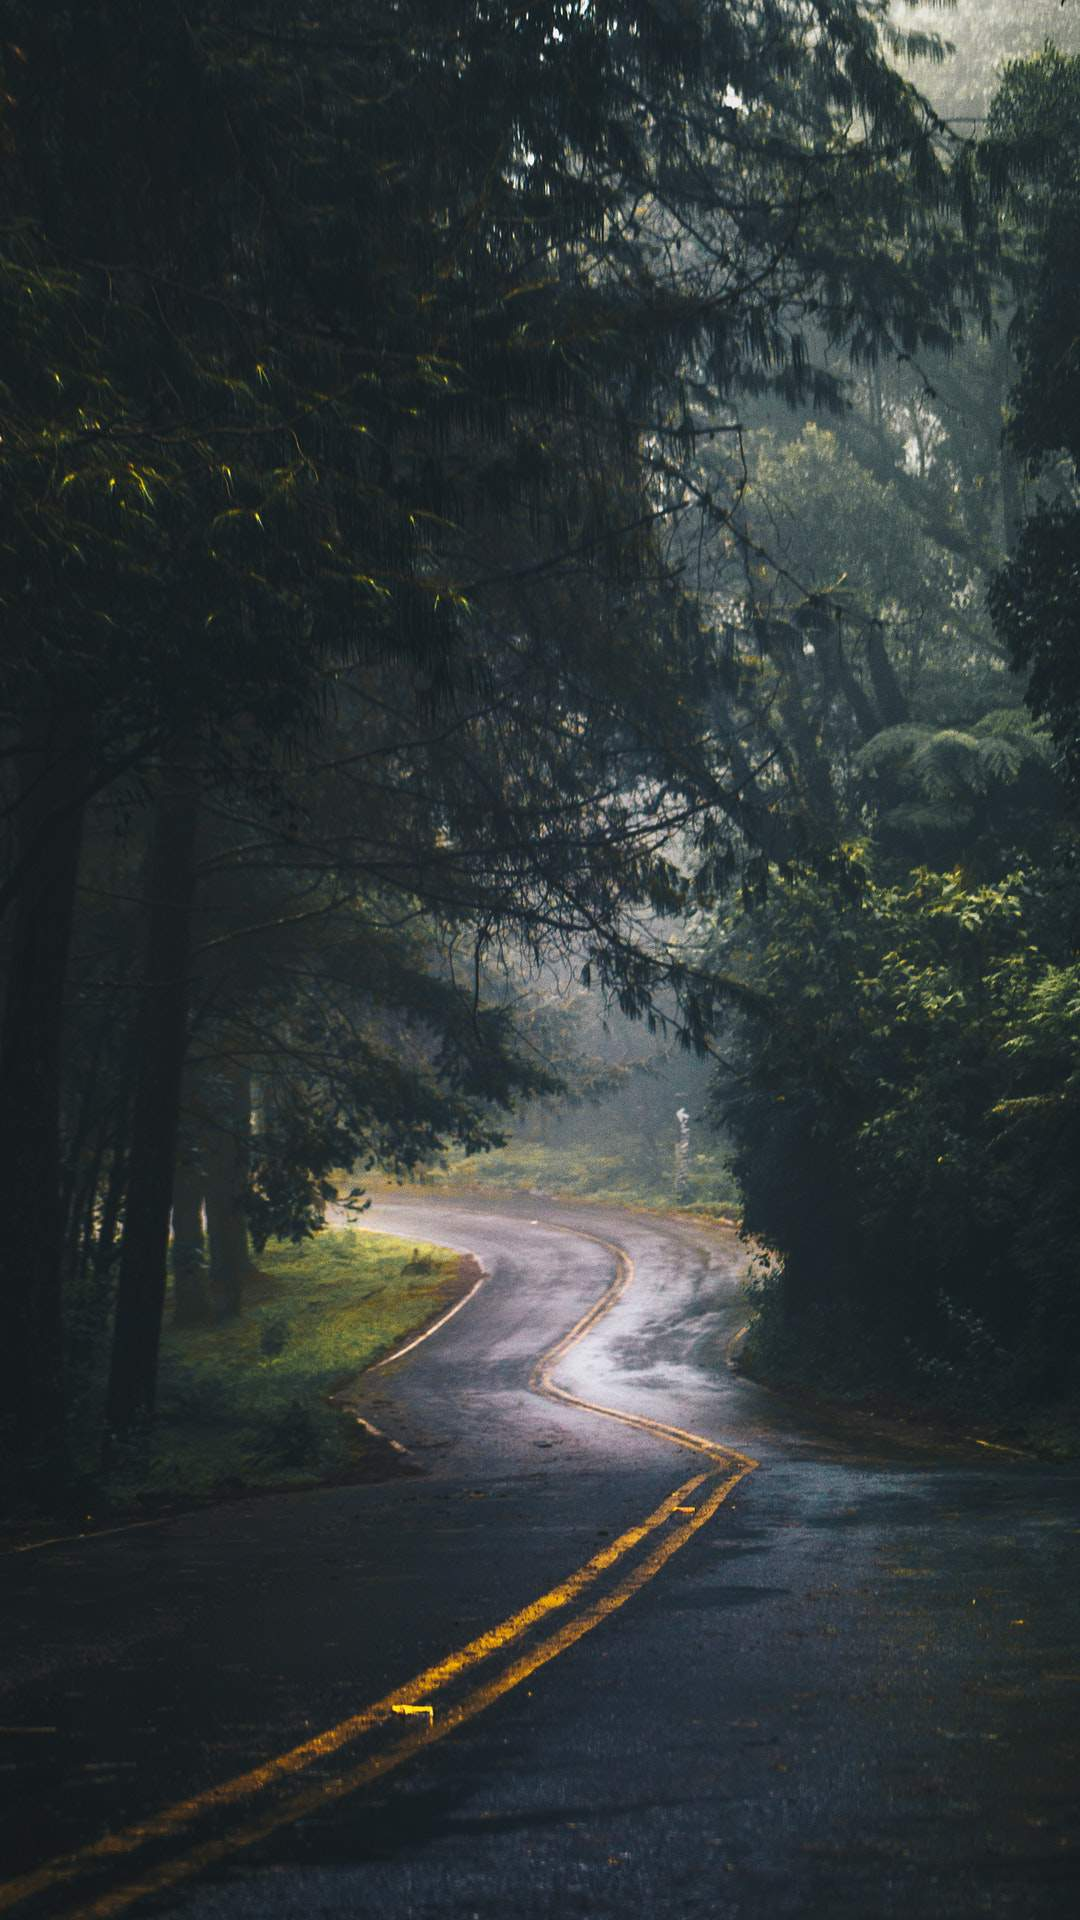 Wallpaper For Phones Fall Nature Road Green Forest Trees Iphone Wallpaper Iphone